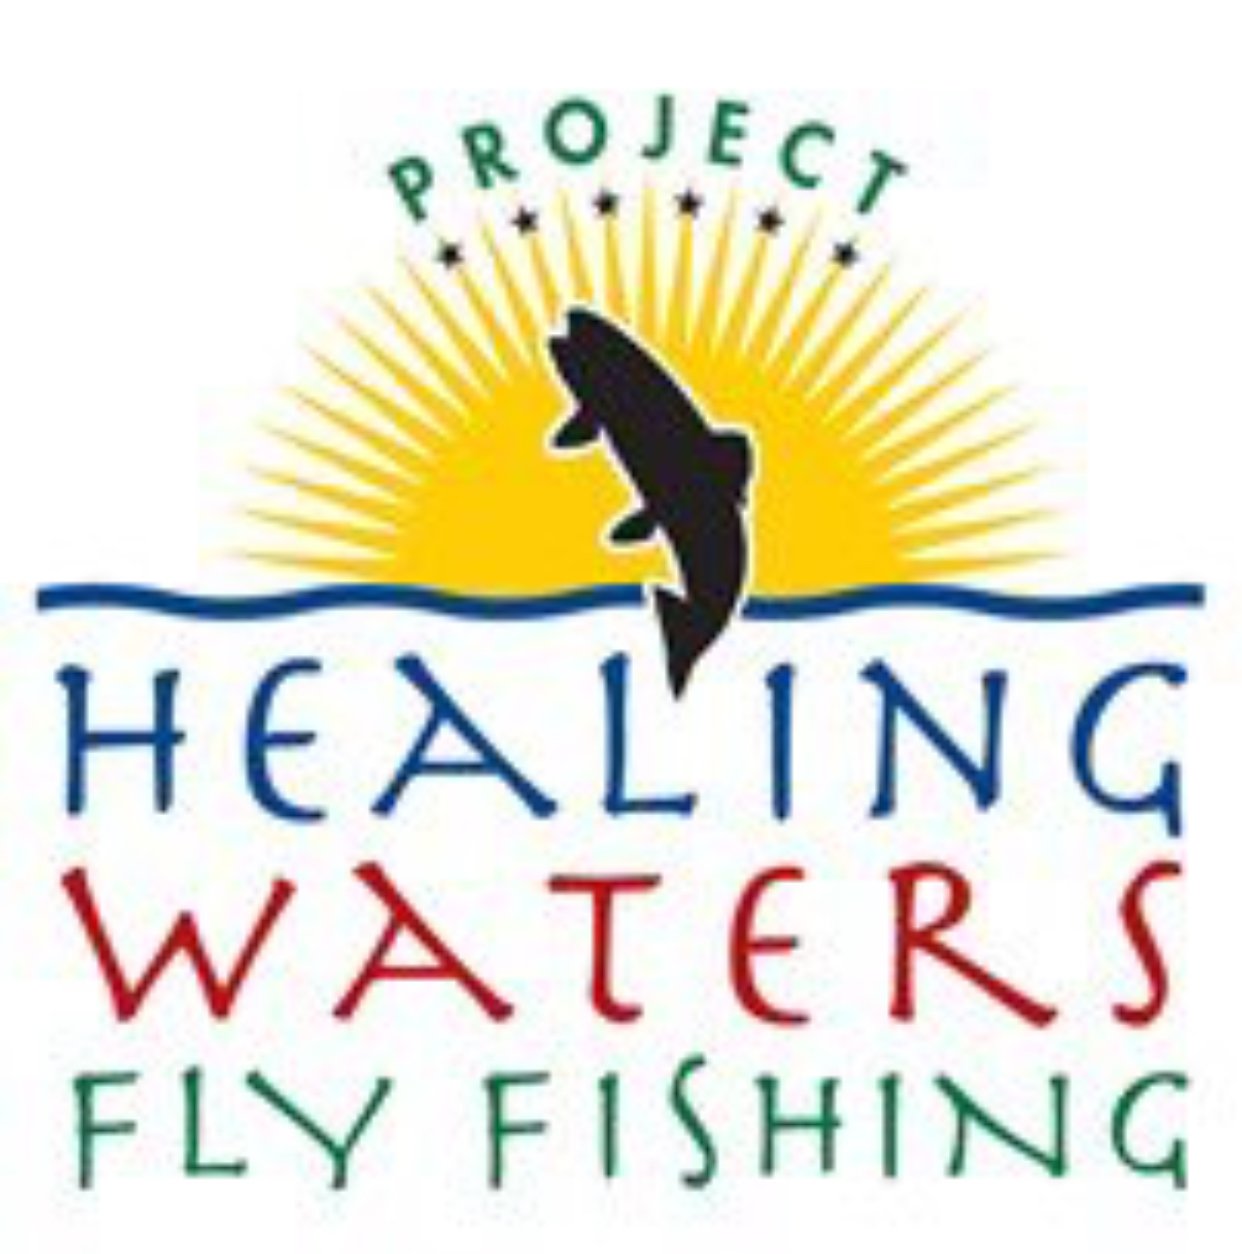 Project Healing Waters Fly Fishing - Dedicated to the rehabilitation of disabled active military service personnel and disabled veterans through fly fishing, fly tying & associated activities.http://www.projecthealingwaters.org